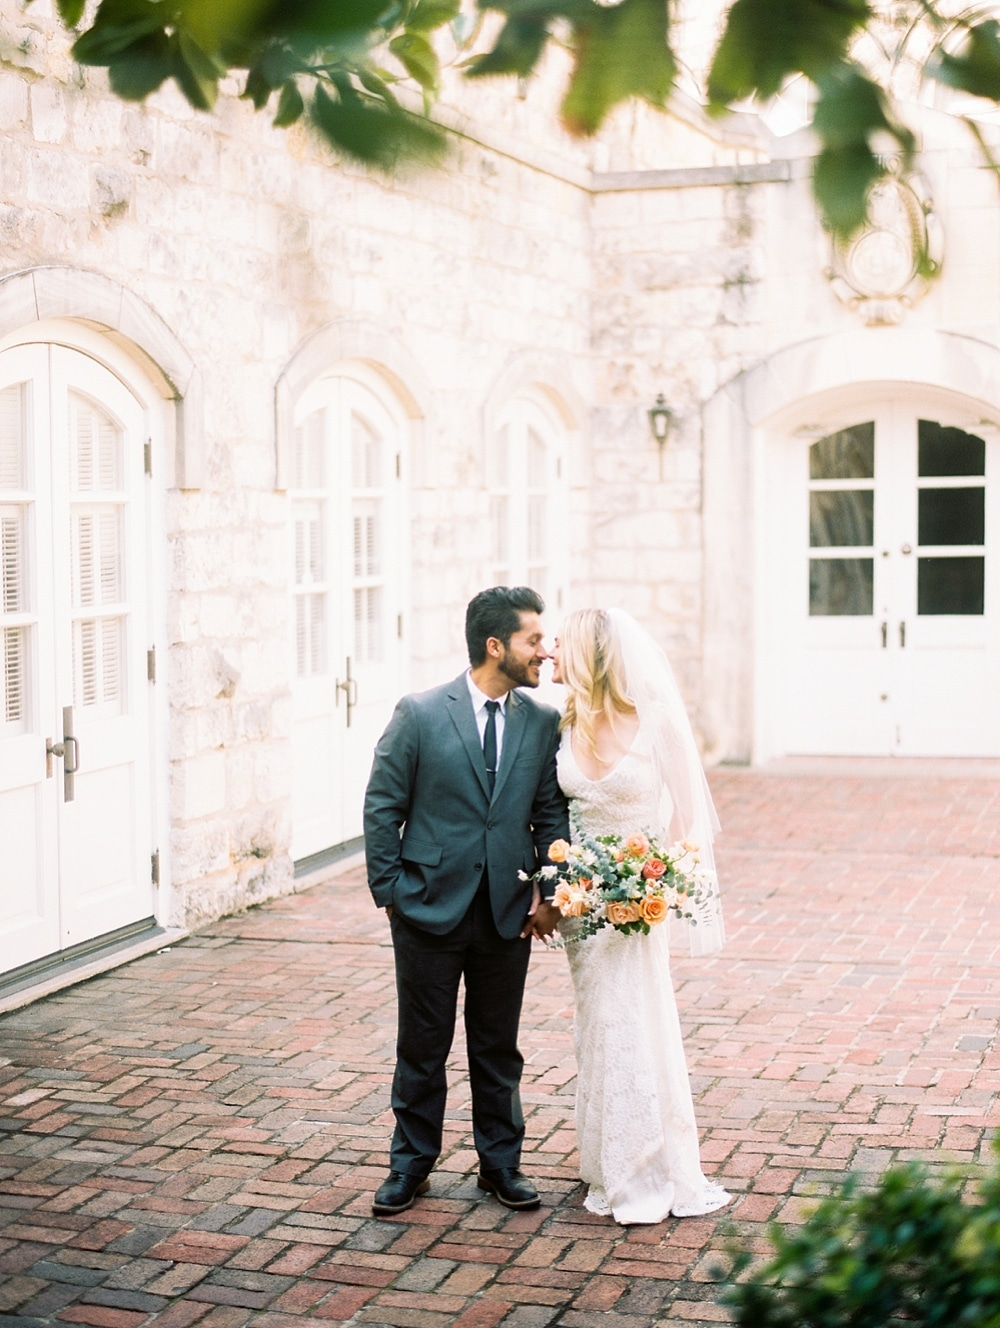 Kristin-La-Voie-Photography-Chateau-Bellevue-Austin-Wedding-Photographer-28